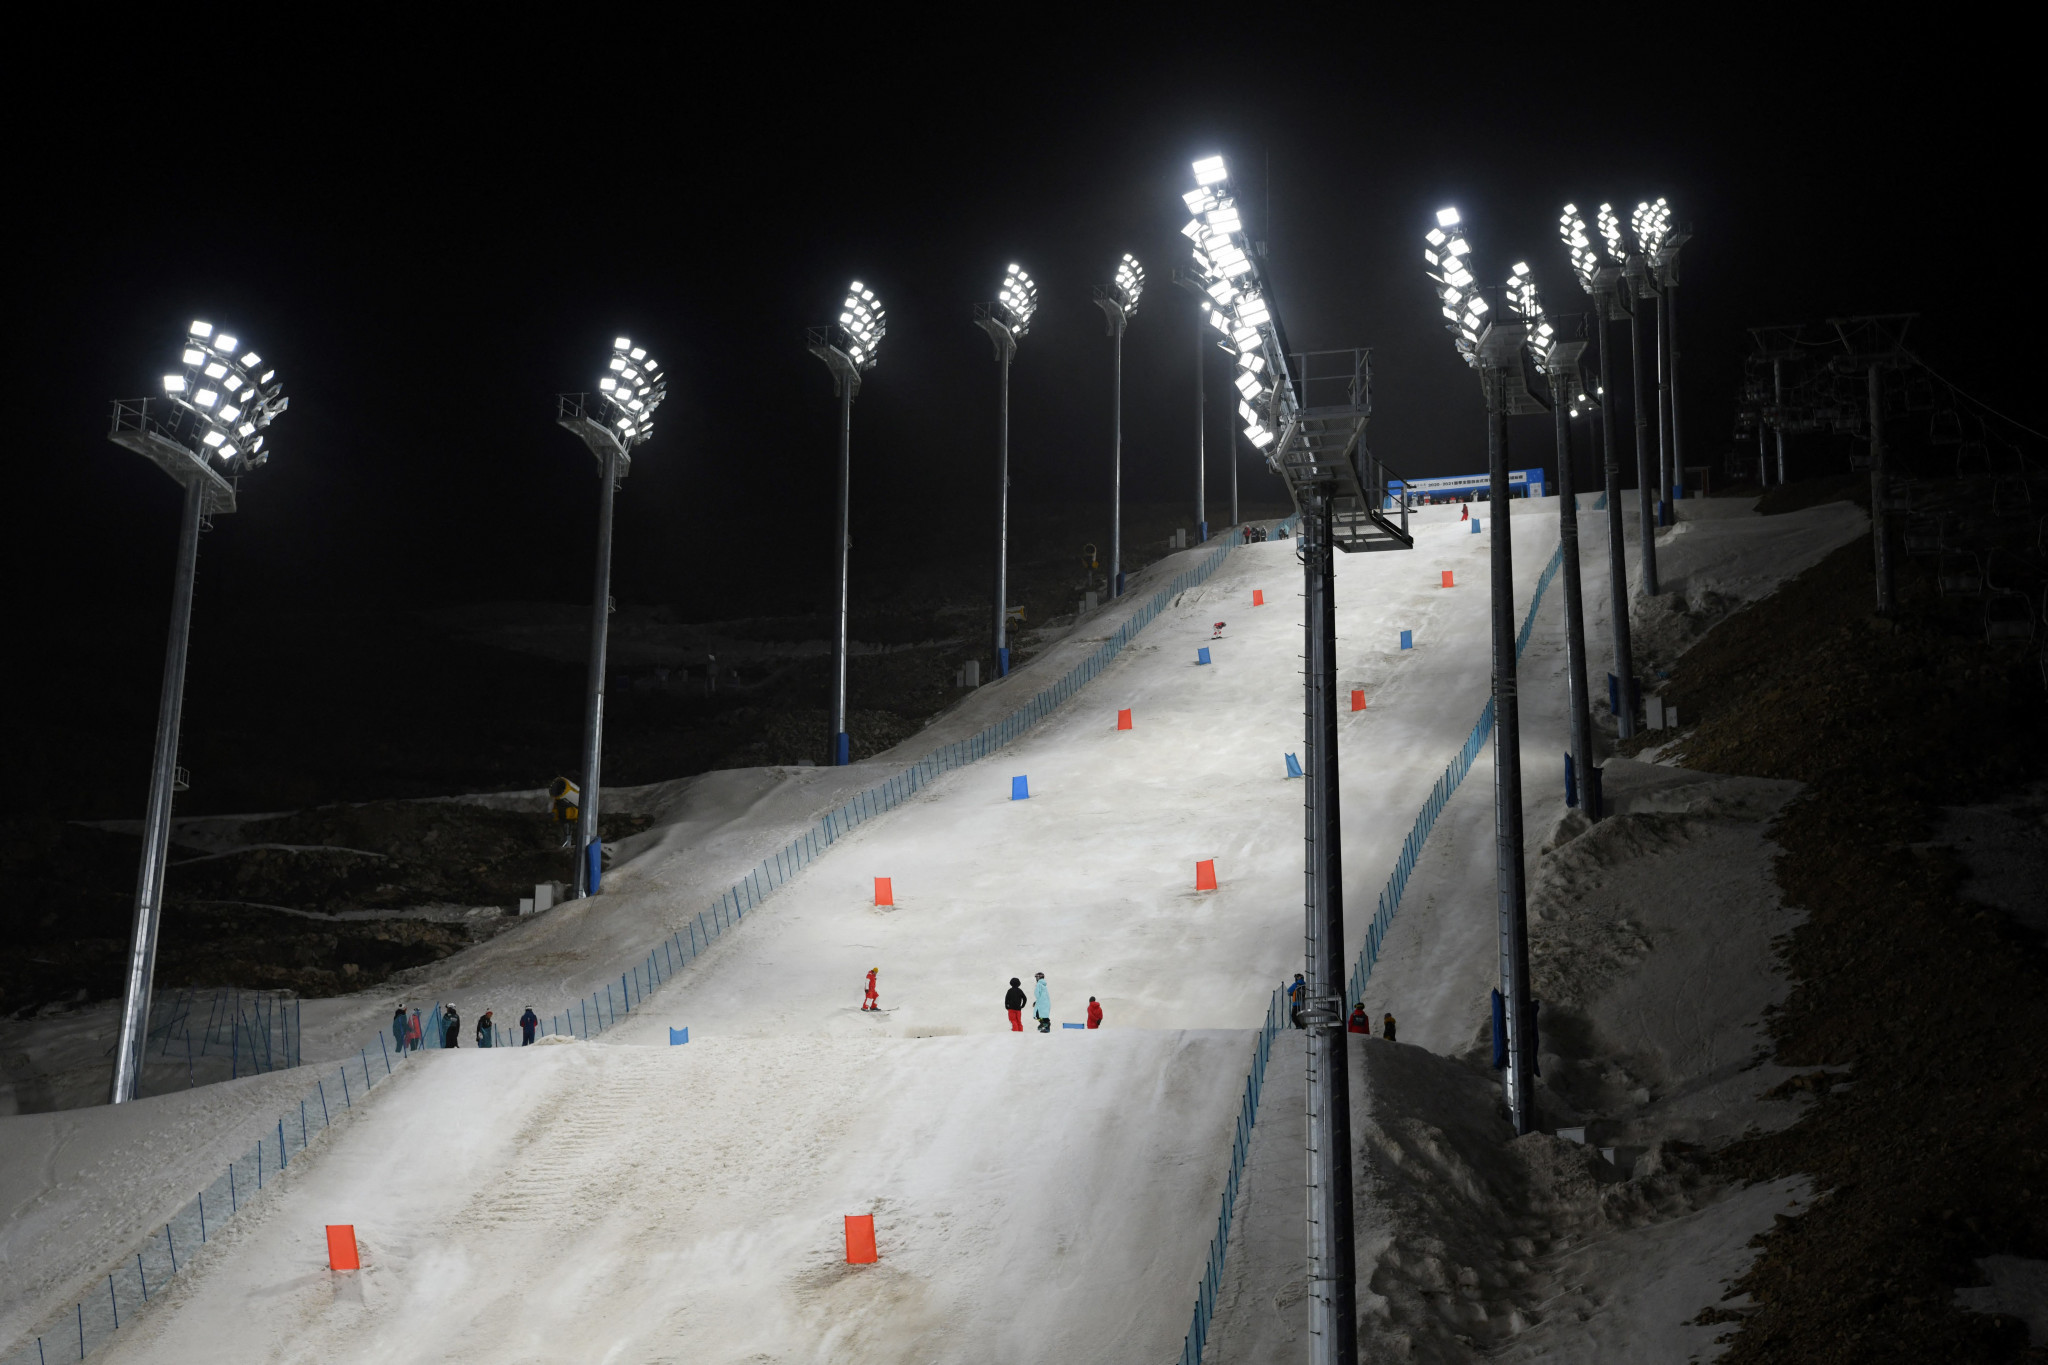 Genting Snow Park is set to host the snowboard cross events at Beijing 2022 ©Getty Images